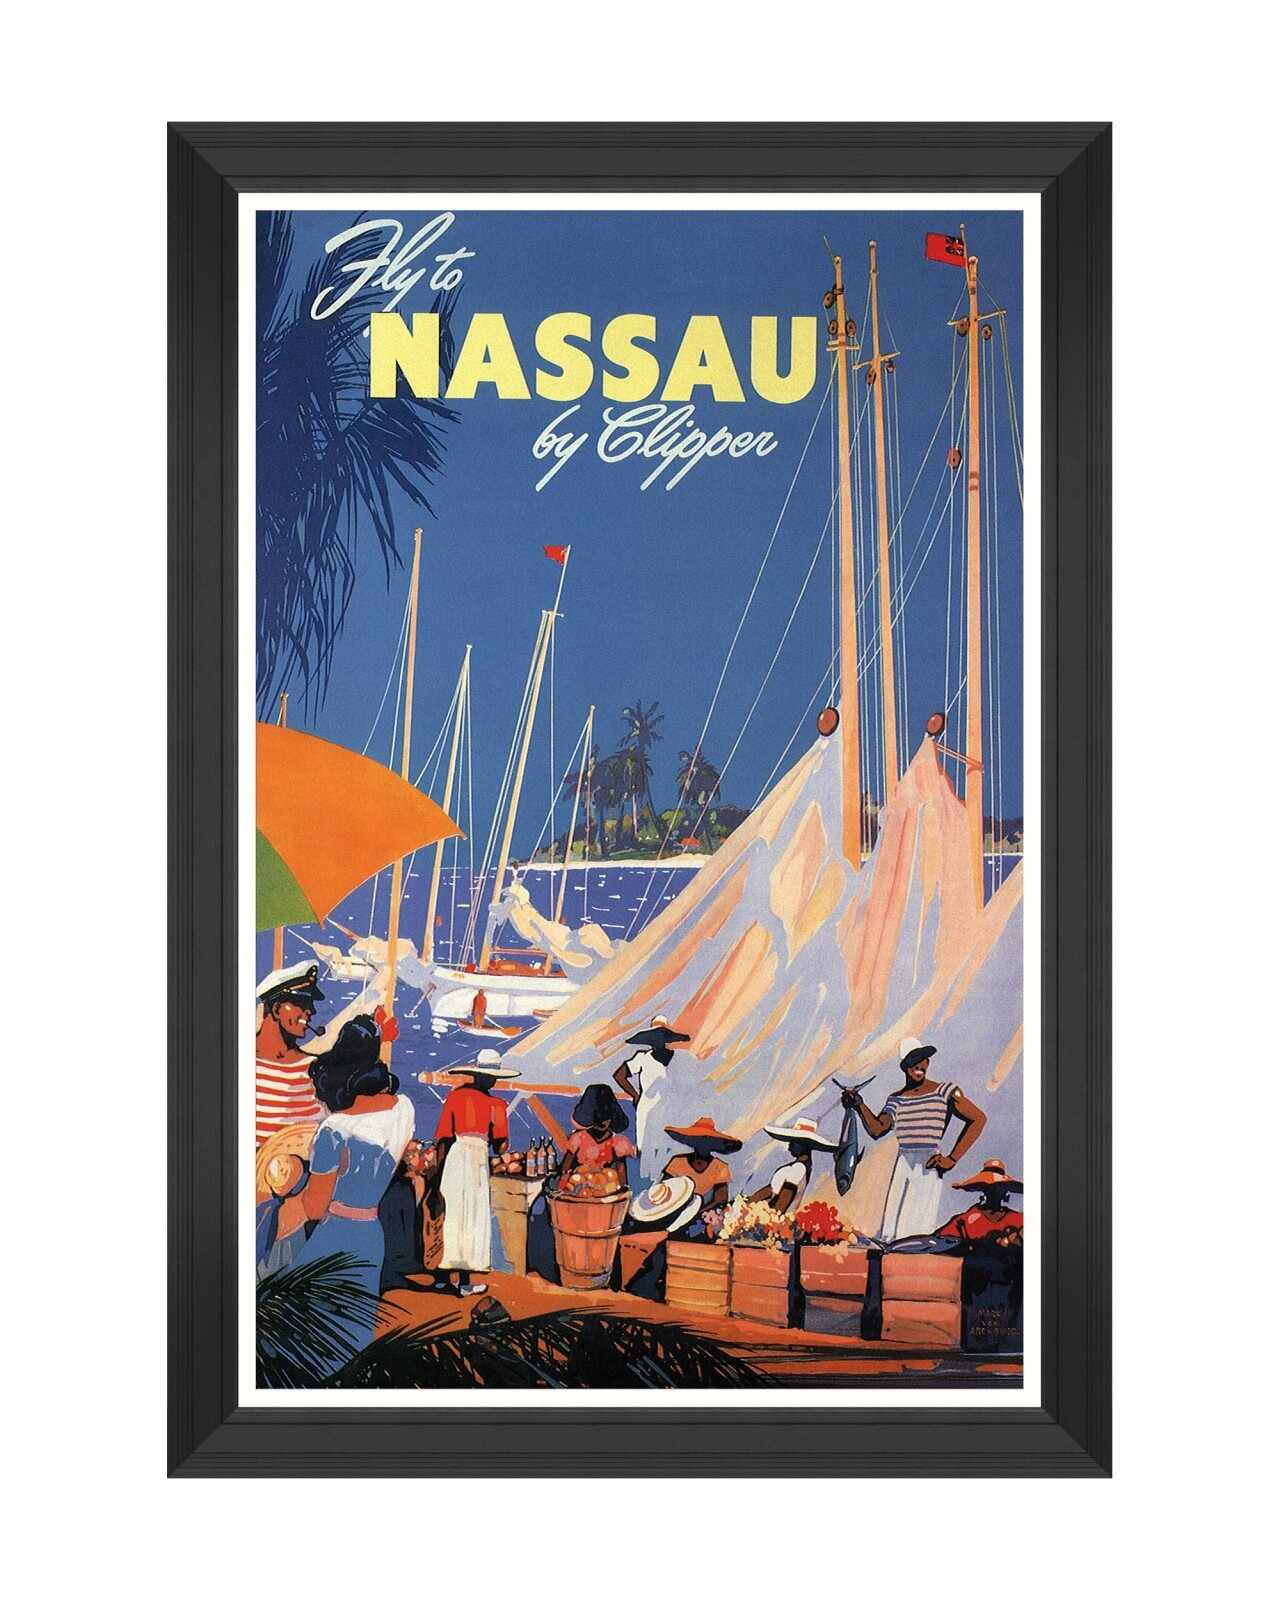 Tablou Framed Art Caribbean Travels - Fly To Nassau, 60 x 90 cm